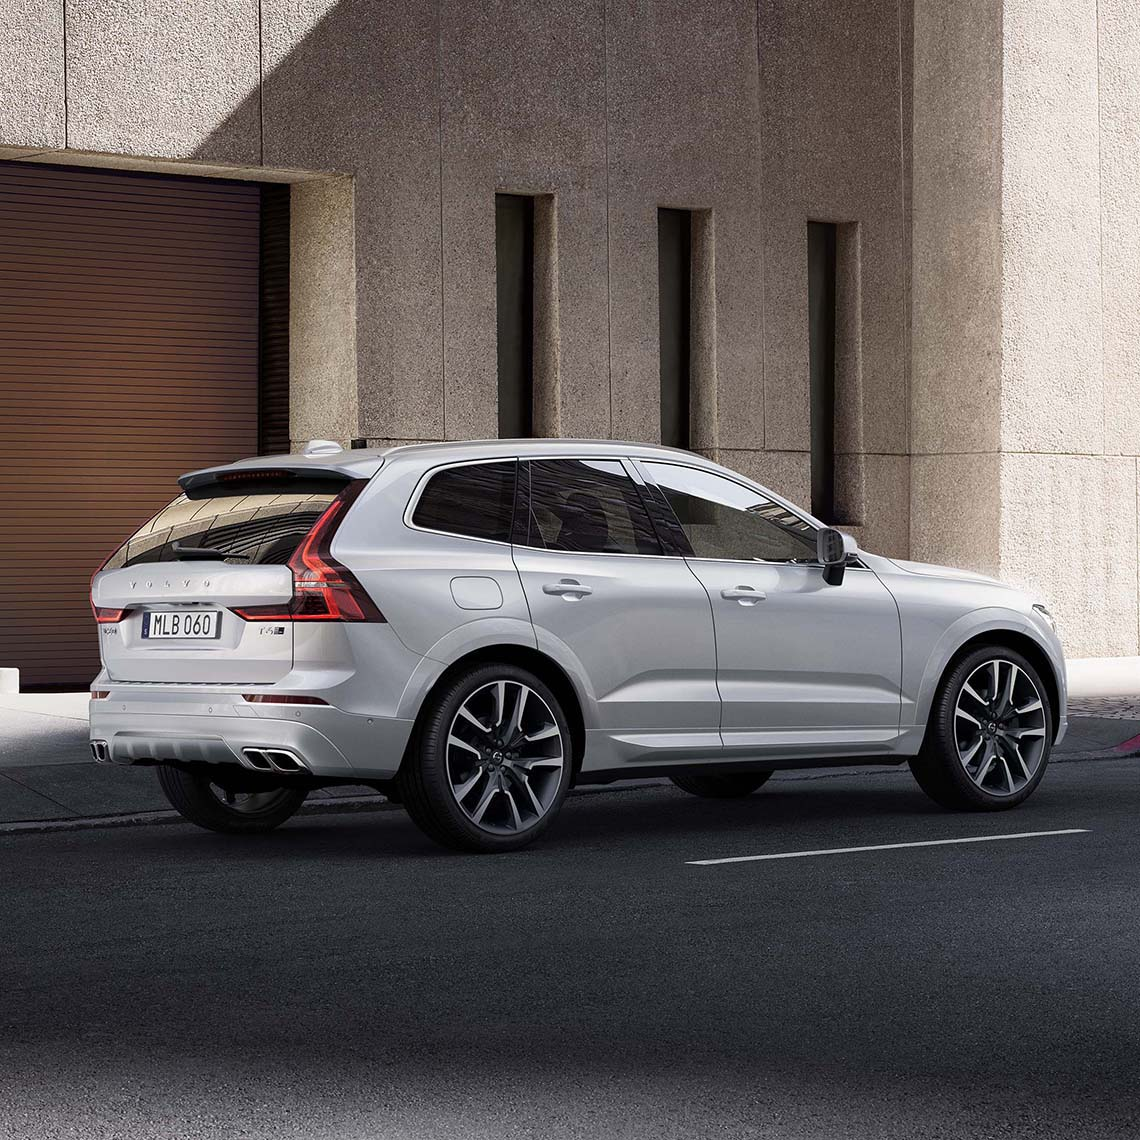 Volvo Xc60 Rdesign Exterior Right Side Rear View